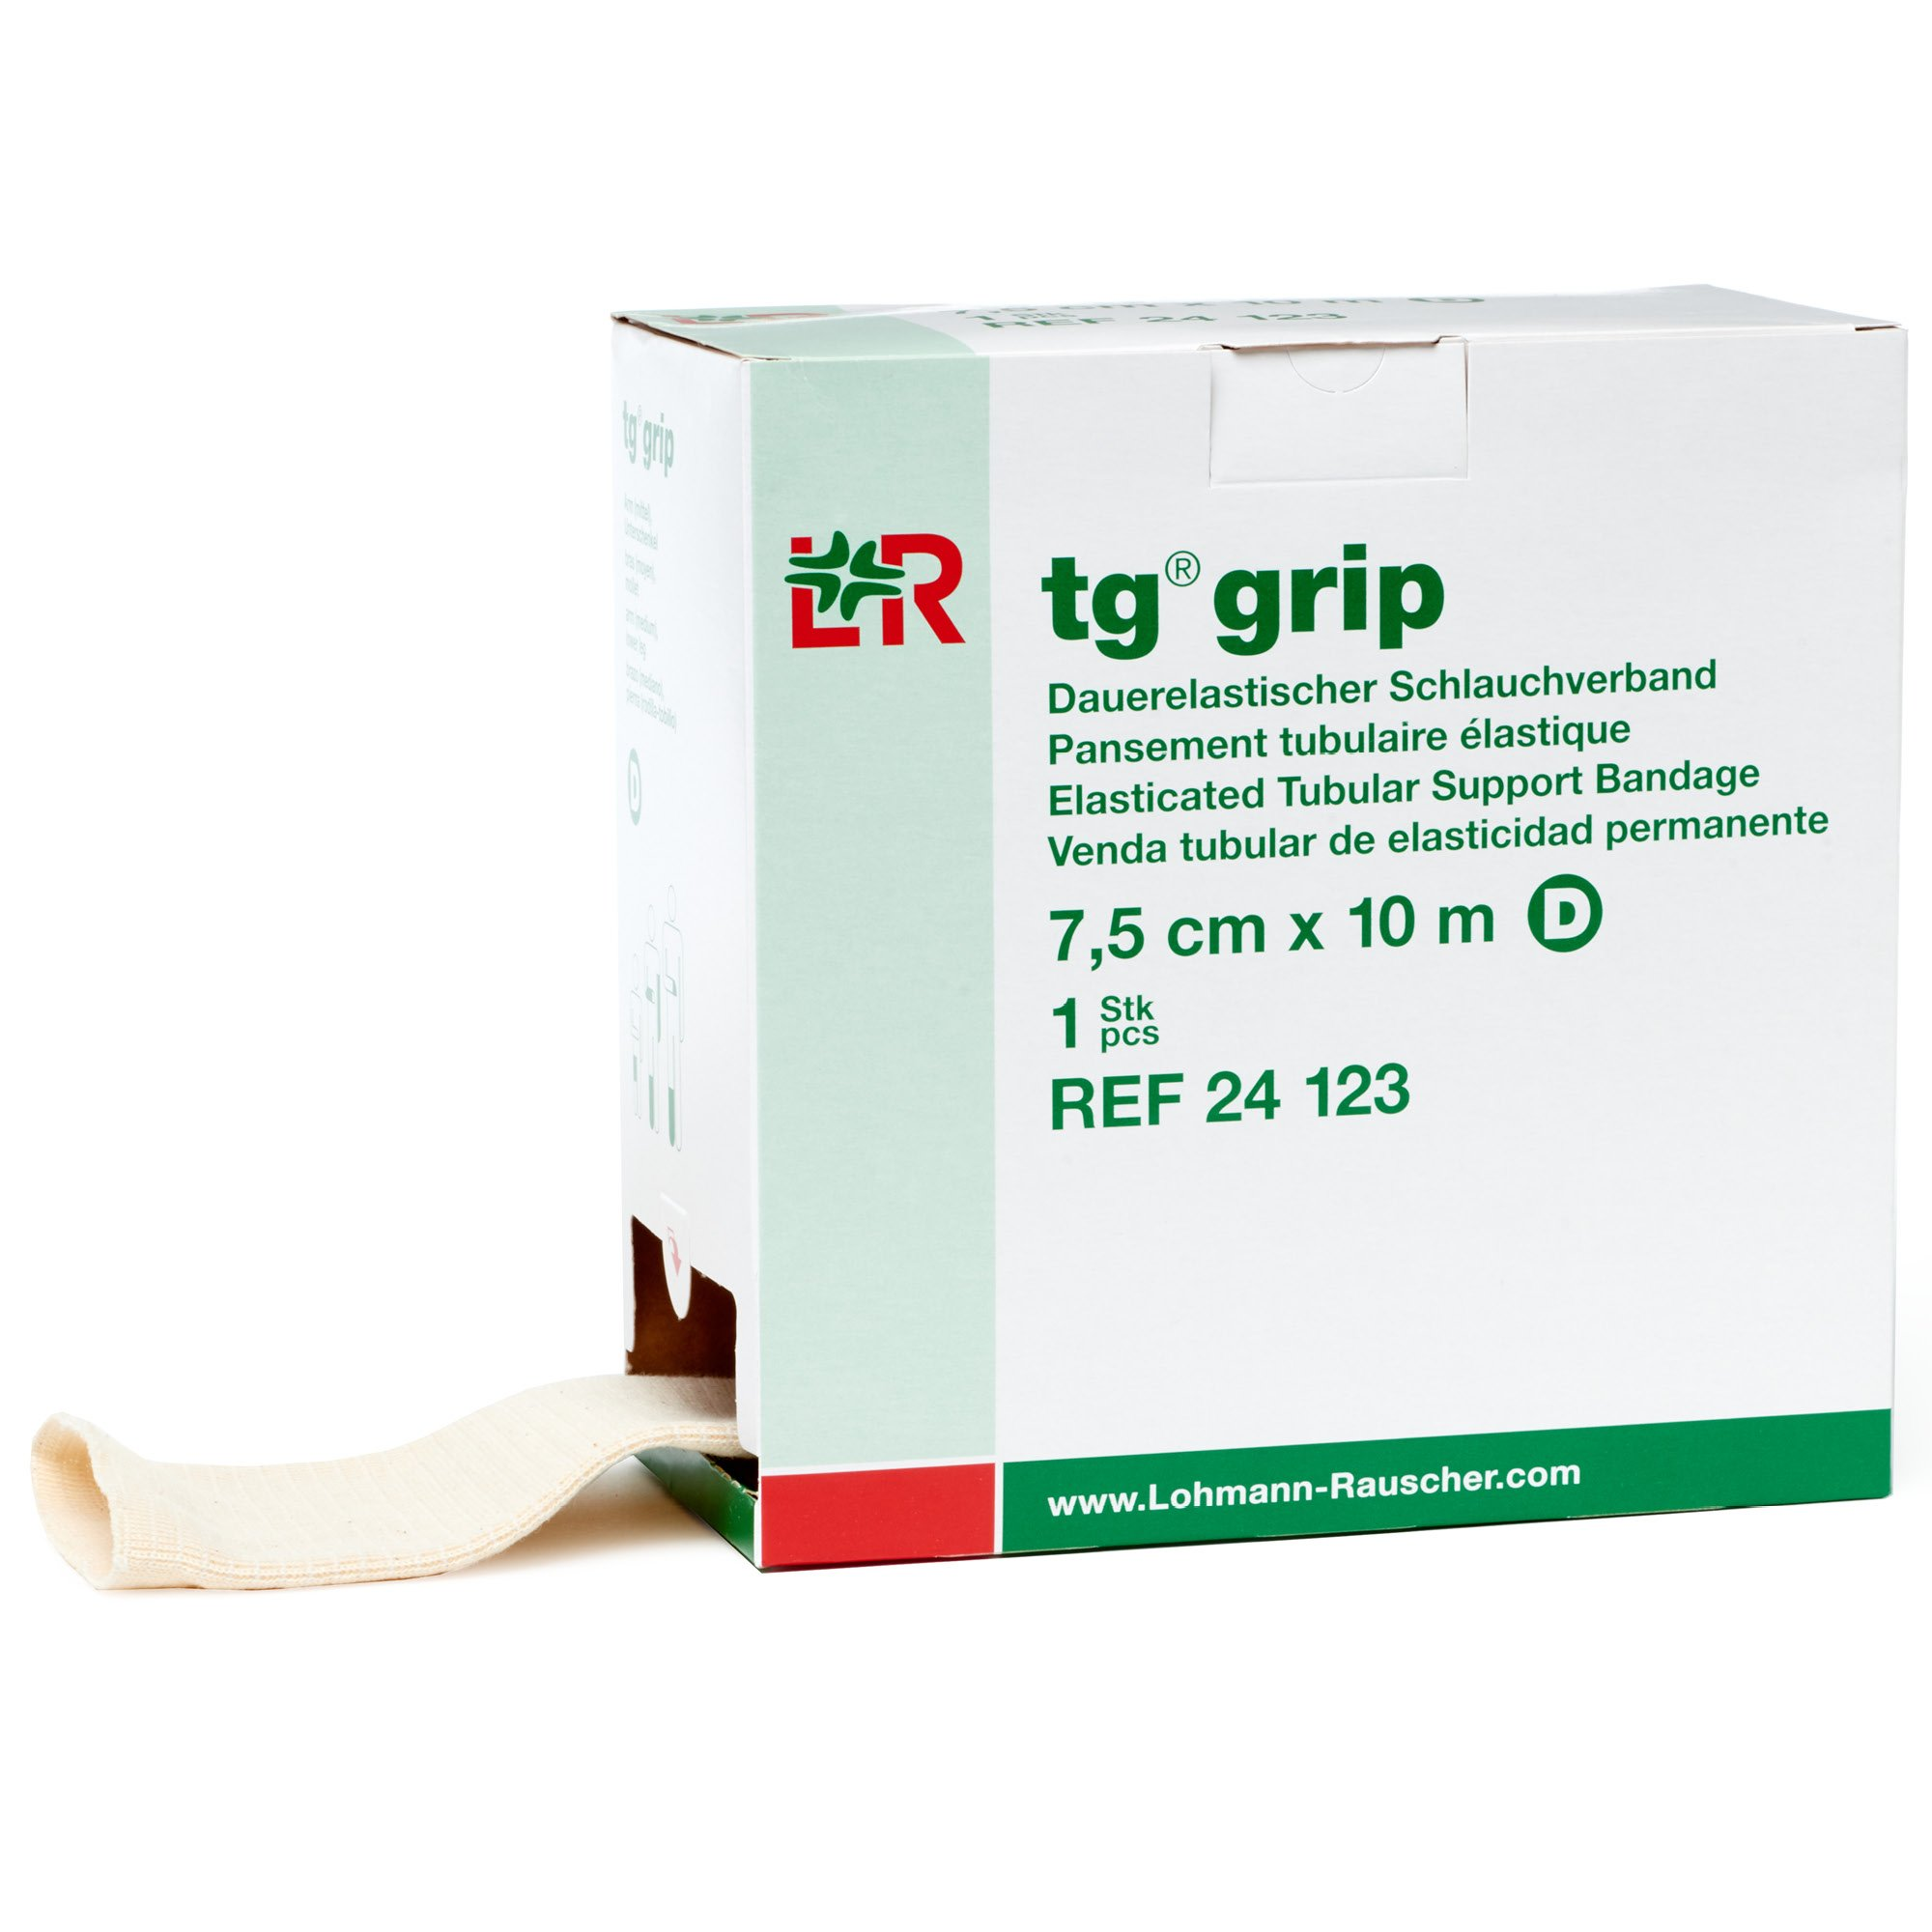 tg Grip Elastic Tubular Compression Bandage, Seamless Tube Stockinette Wrap for Retention, Lymphedema, Swelling, 85% Cotton, Washable & Reusable, Size D by Lohmann&Rauscher